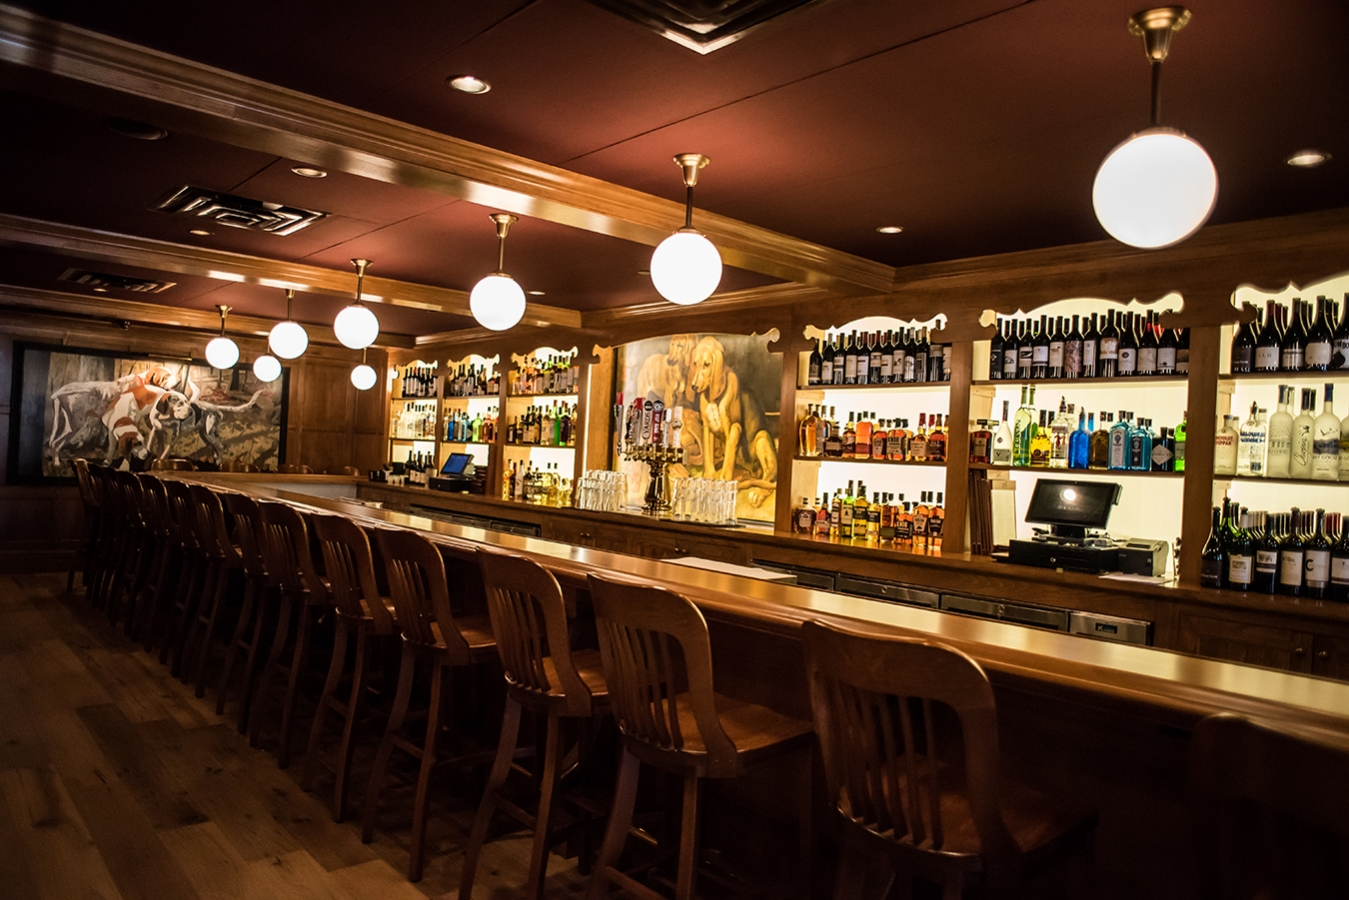 The bar is an energetic spot for happy hour